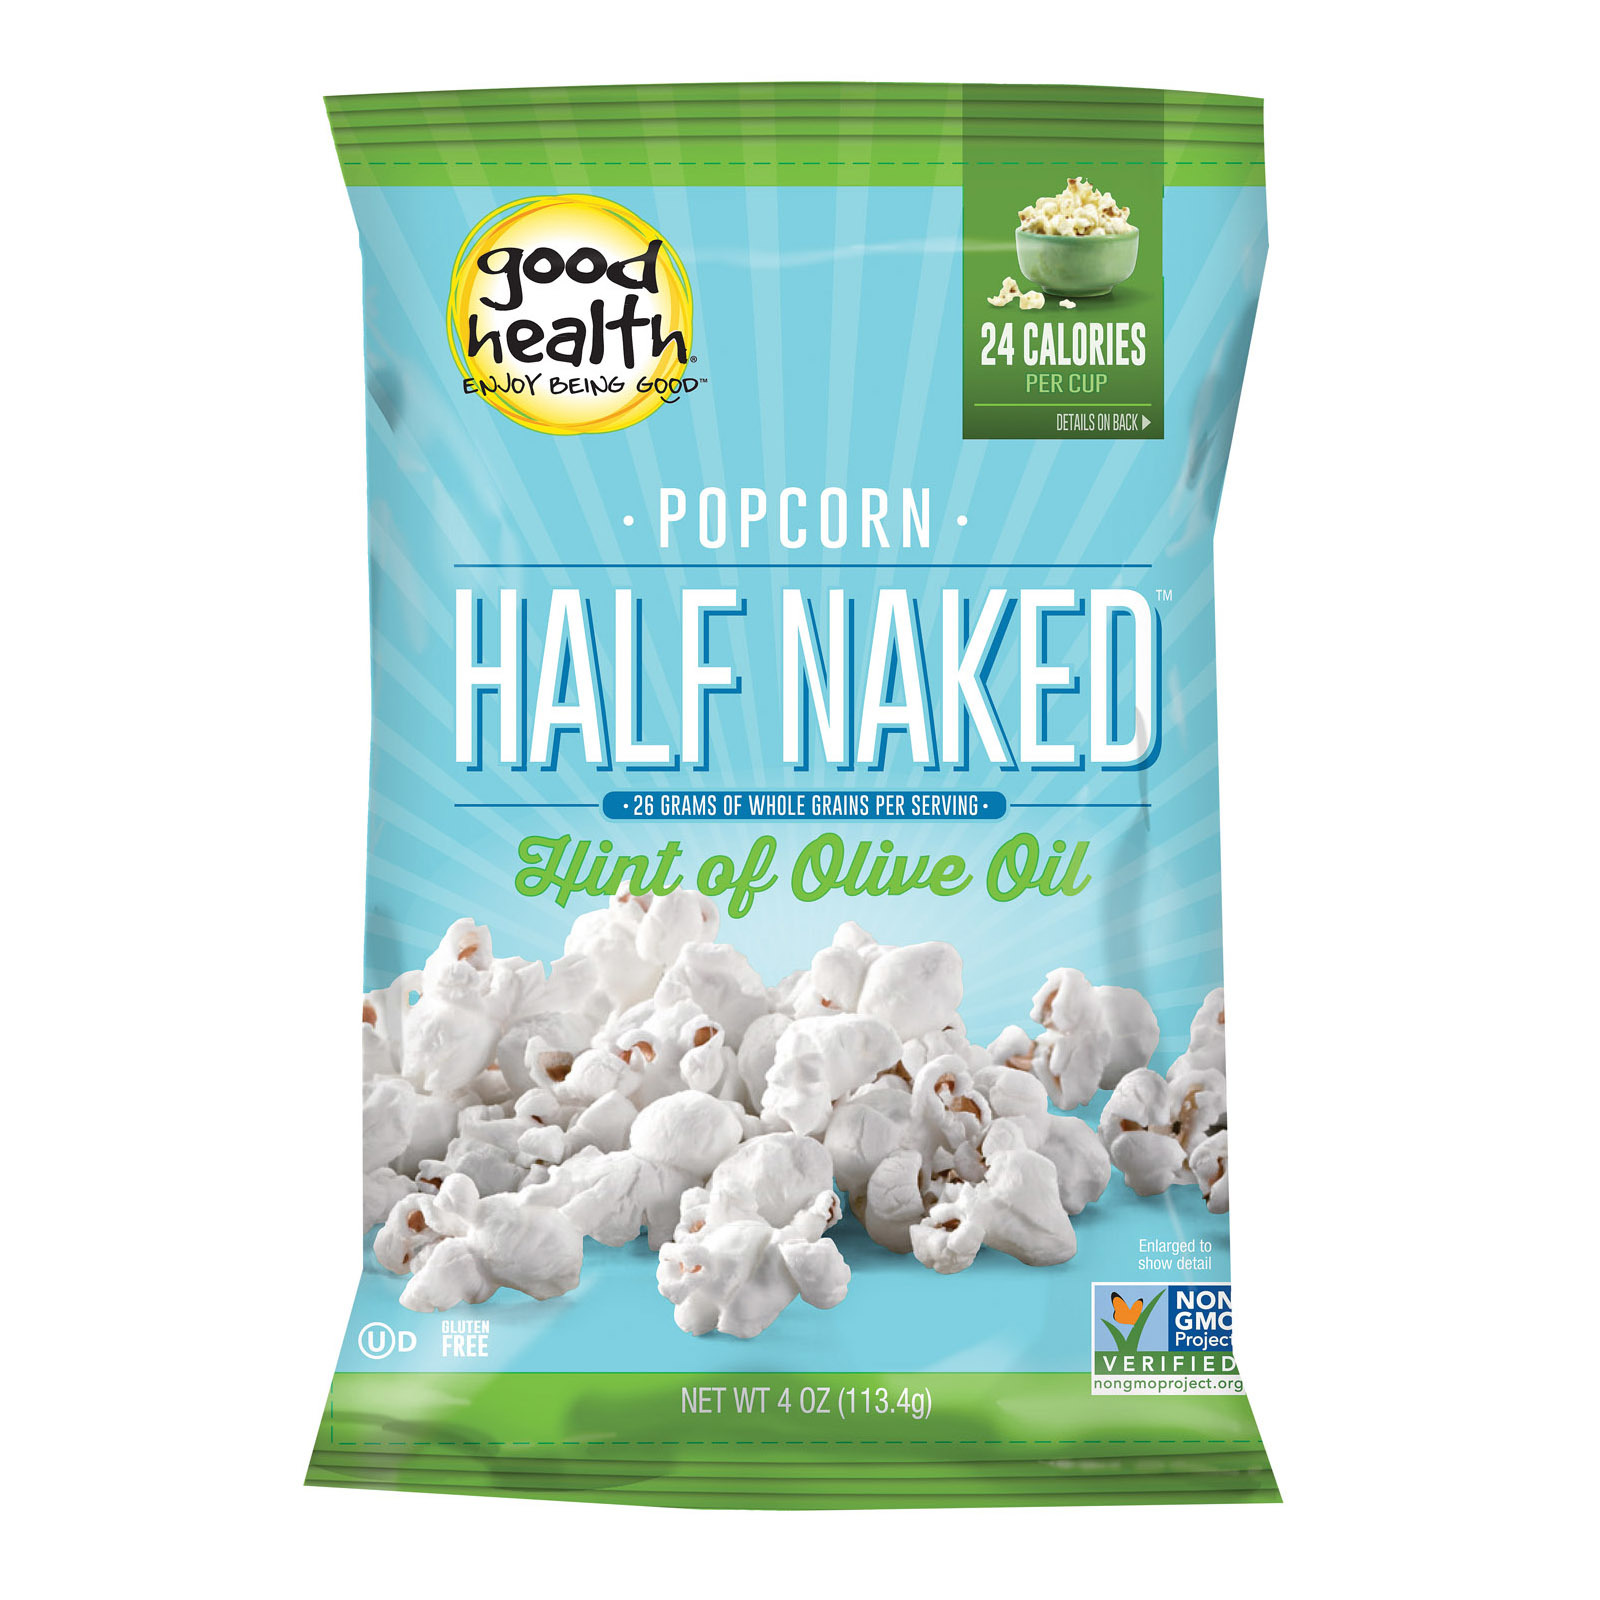 Good Health Popcorn - Half Naked - Case of 9 - 4 oz.